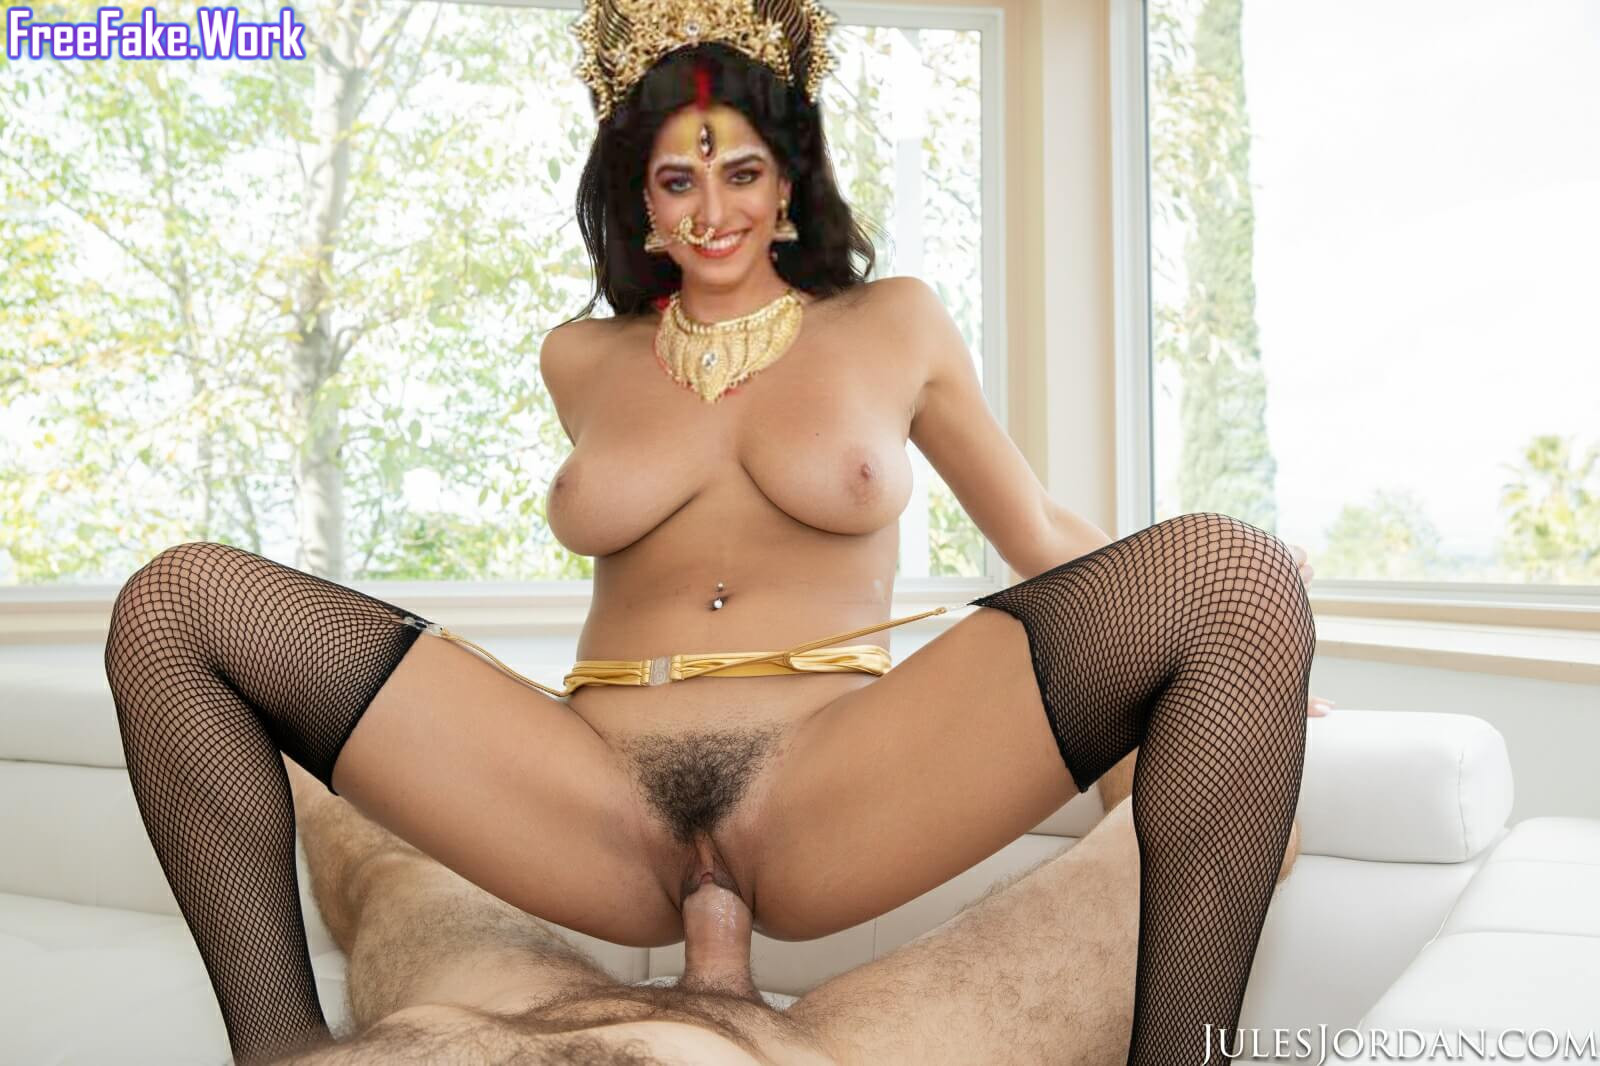 Pooja-sharma-fake-god-sex-2.jpg